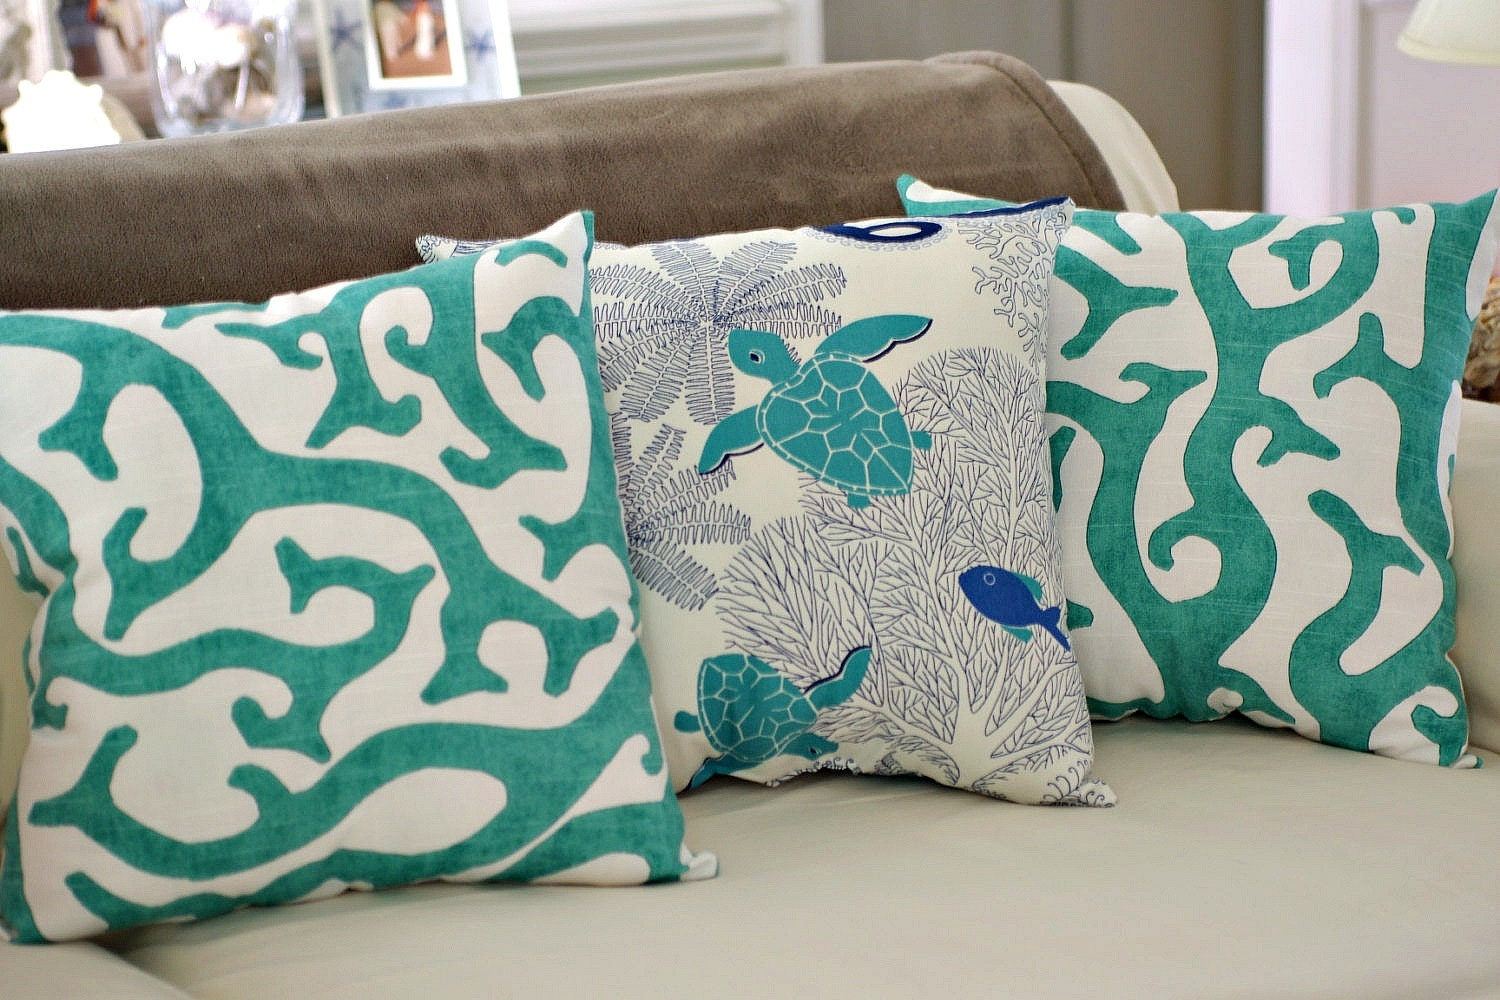 Coastal Home Throw Pillows : Beach House Decor Coral Reef 18x18 Throw Pillow PICK FABRIC